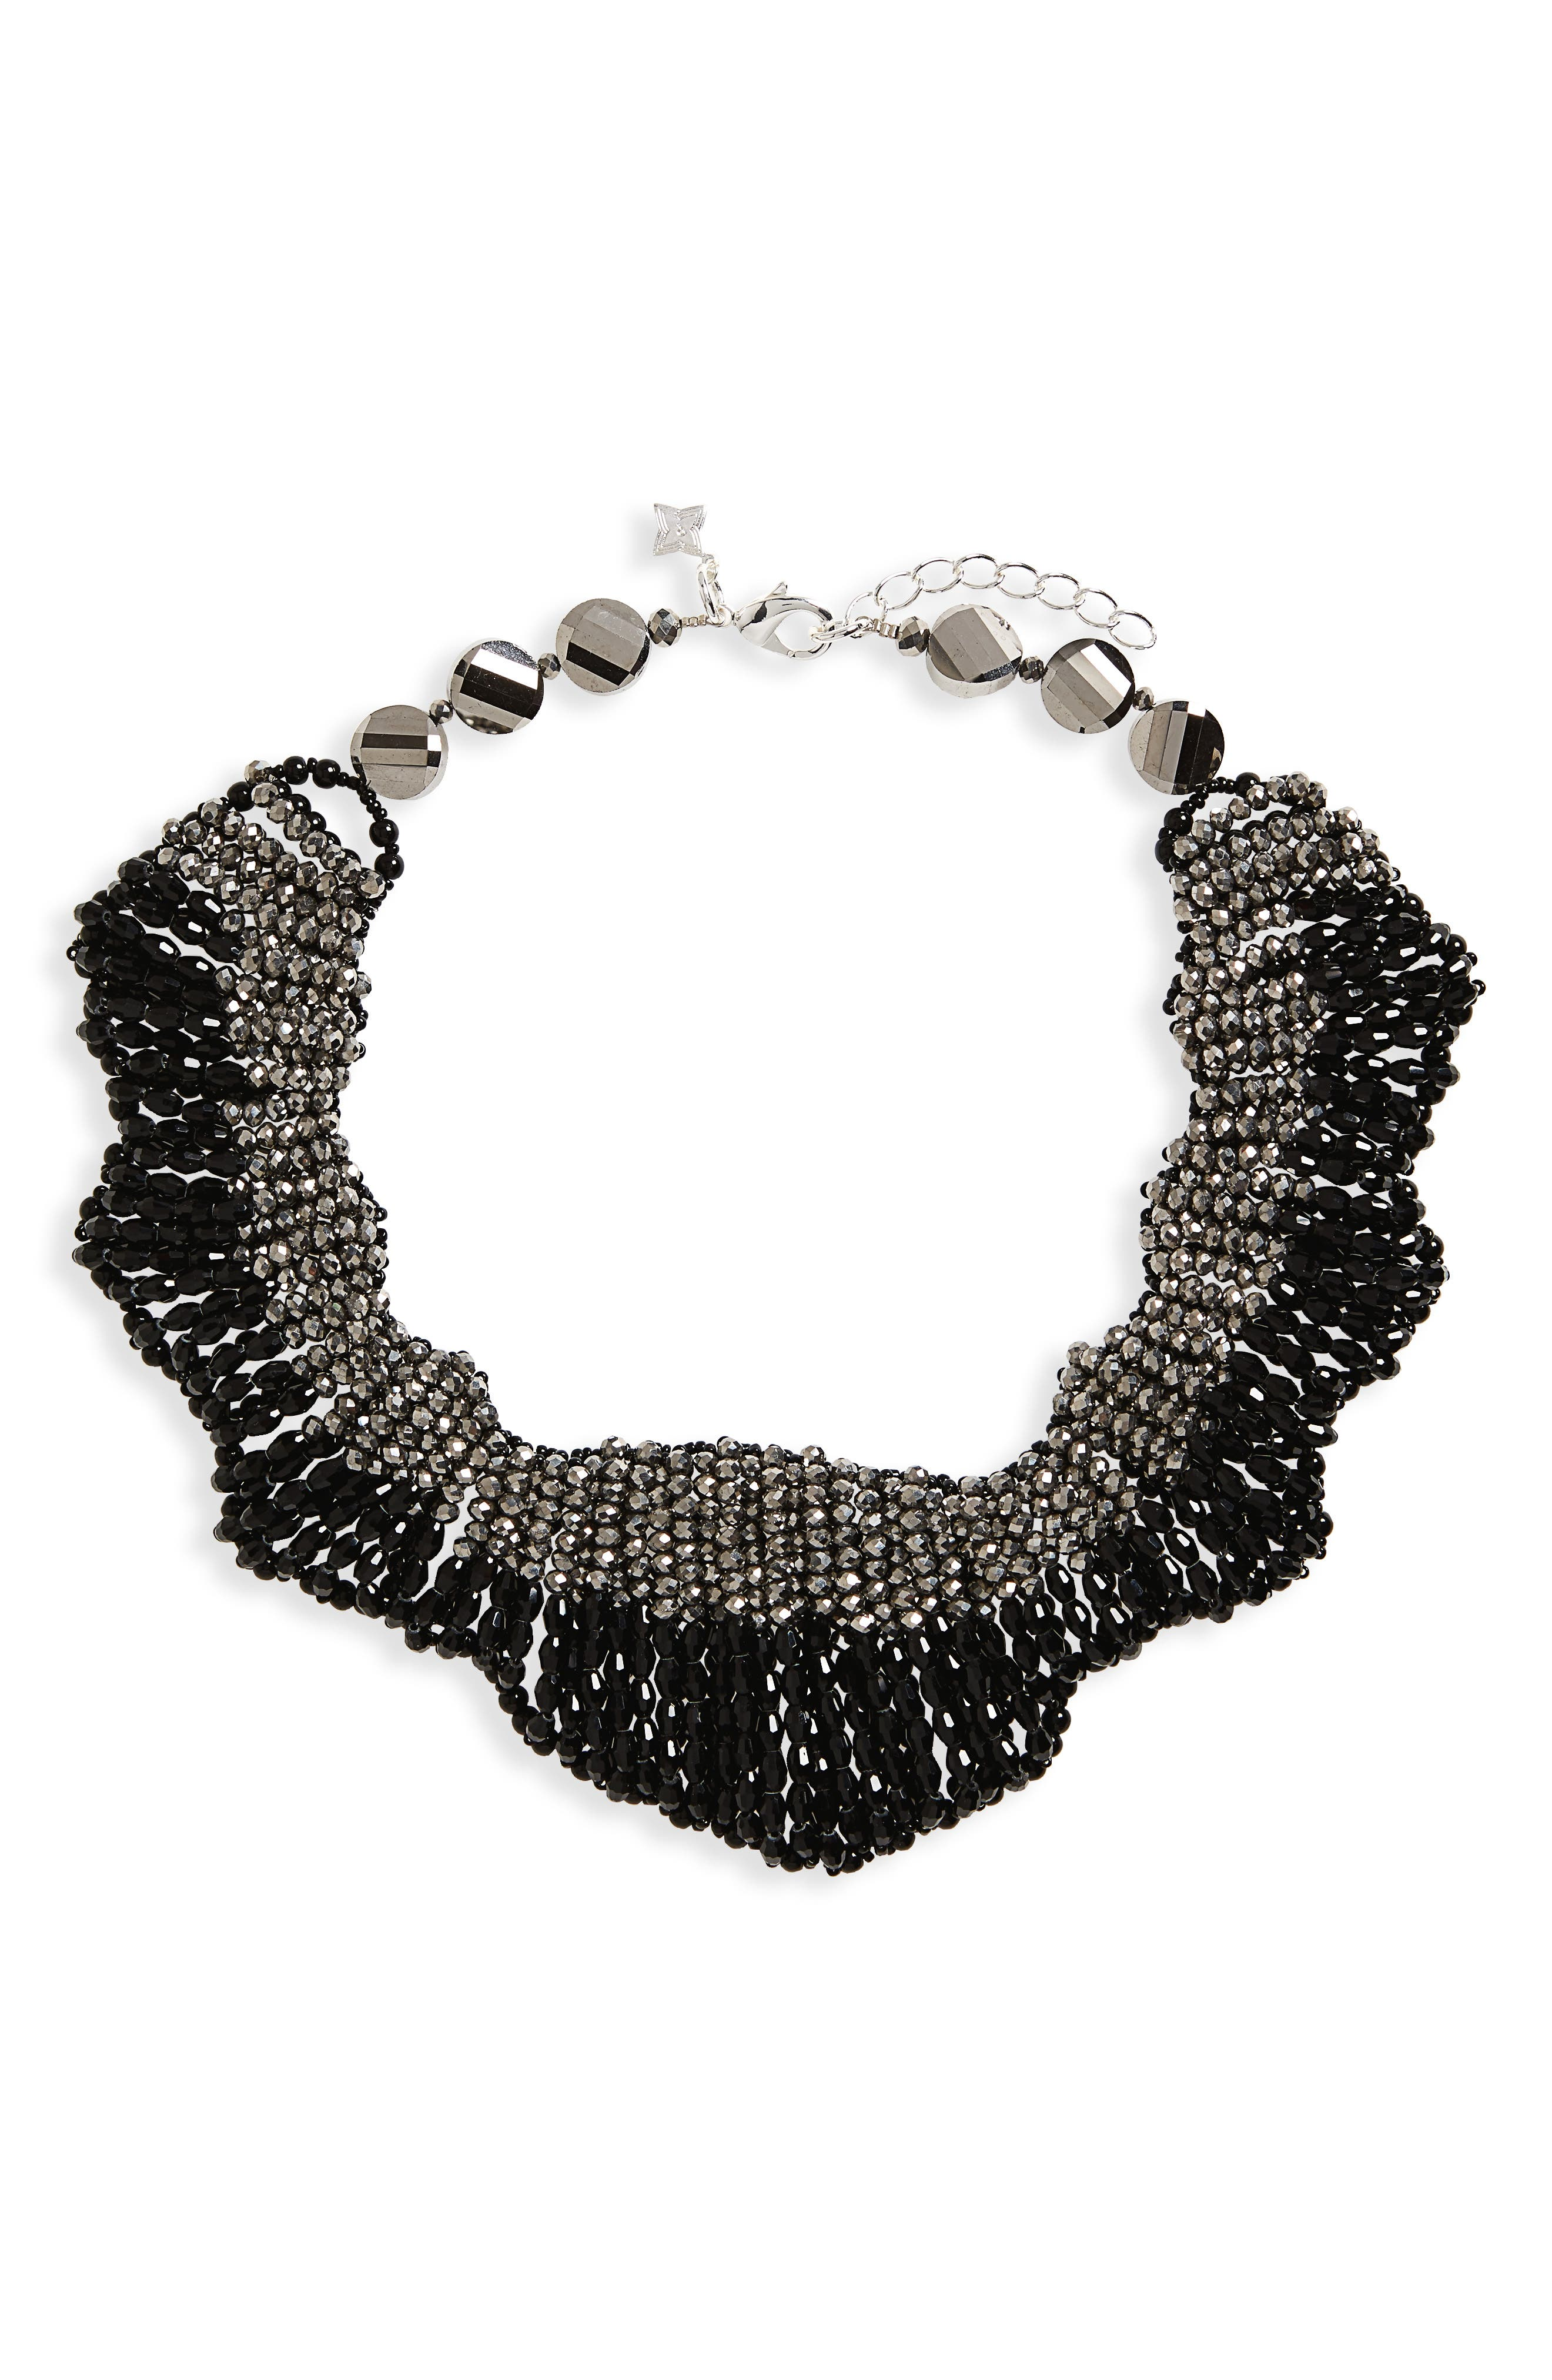 Beaded Statement Collar Necklace,                         Main,                         color, 001